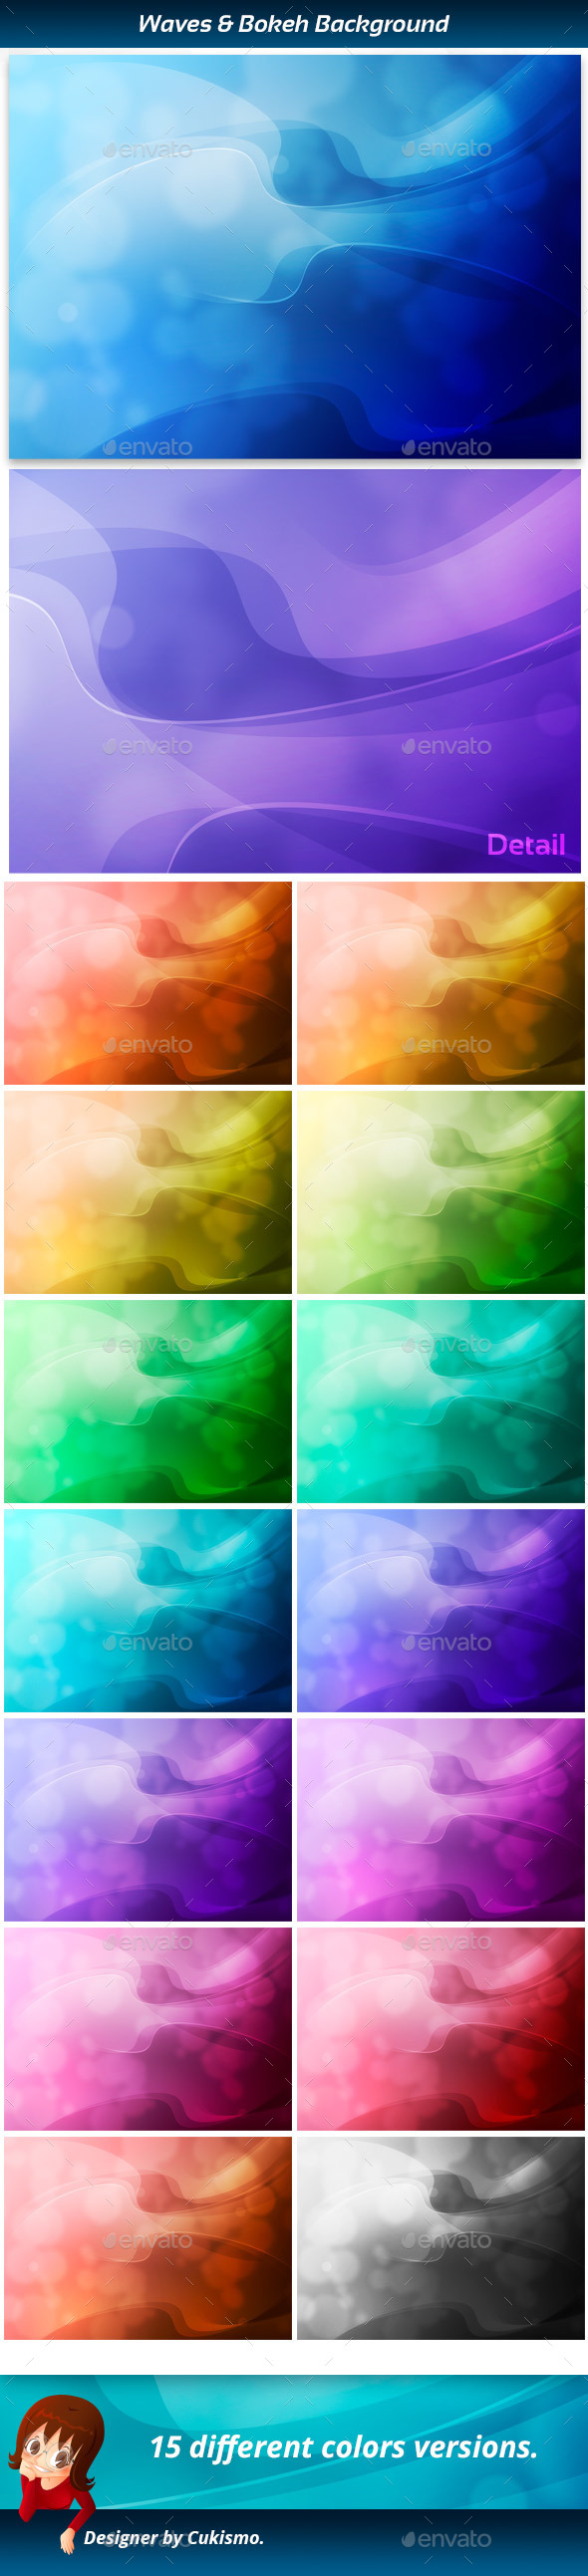 Waves and bokeh abstract background - Abstract Backgrounds